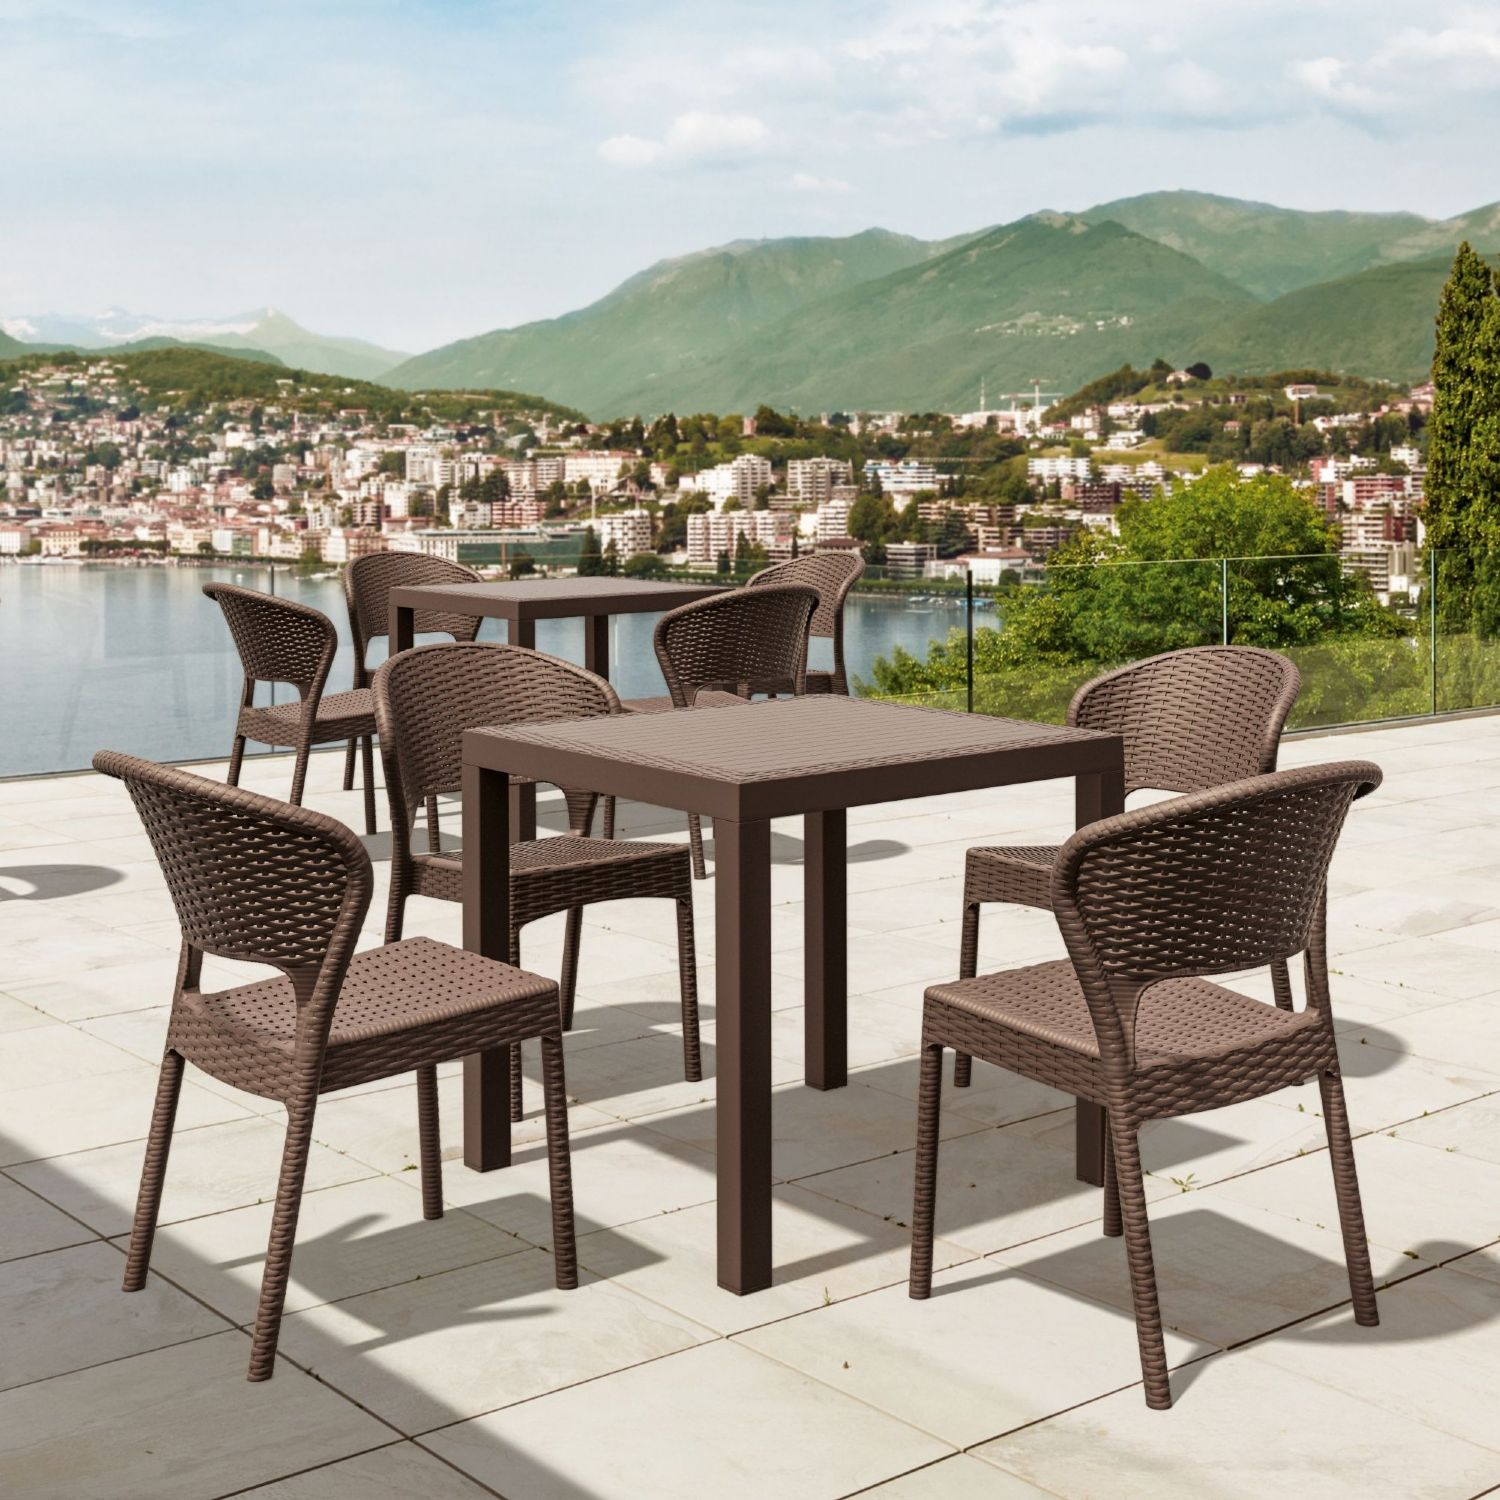 Daytona Wickerlook Square Patio Dining Set 5 Piece Brown ISP8181S-BR - 1